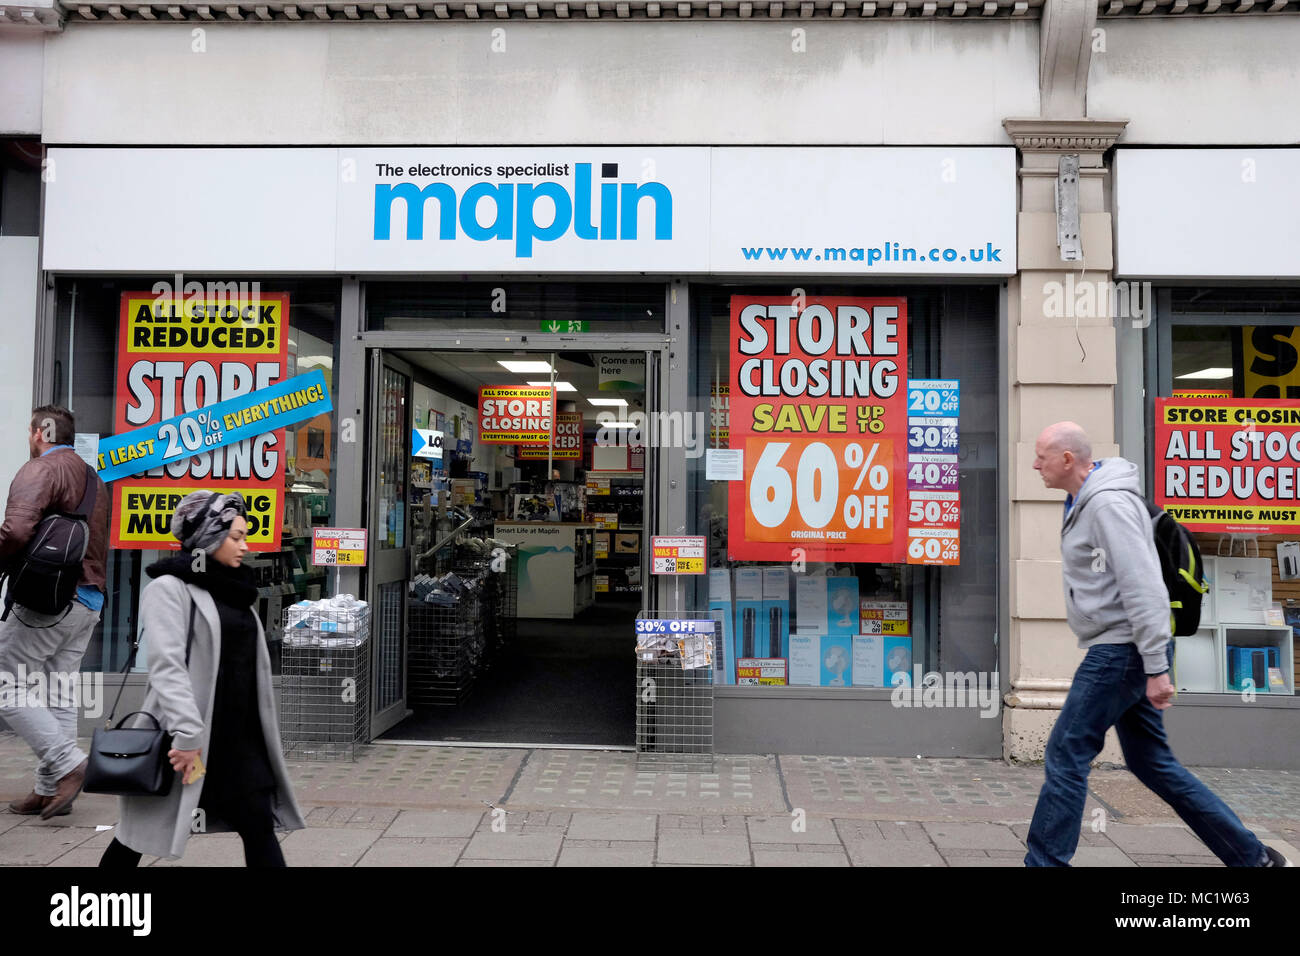 A general view of Maplin shop on Tottenham Court Road, central London, UK - Stock Image